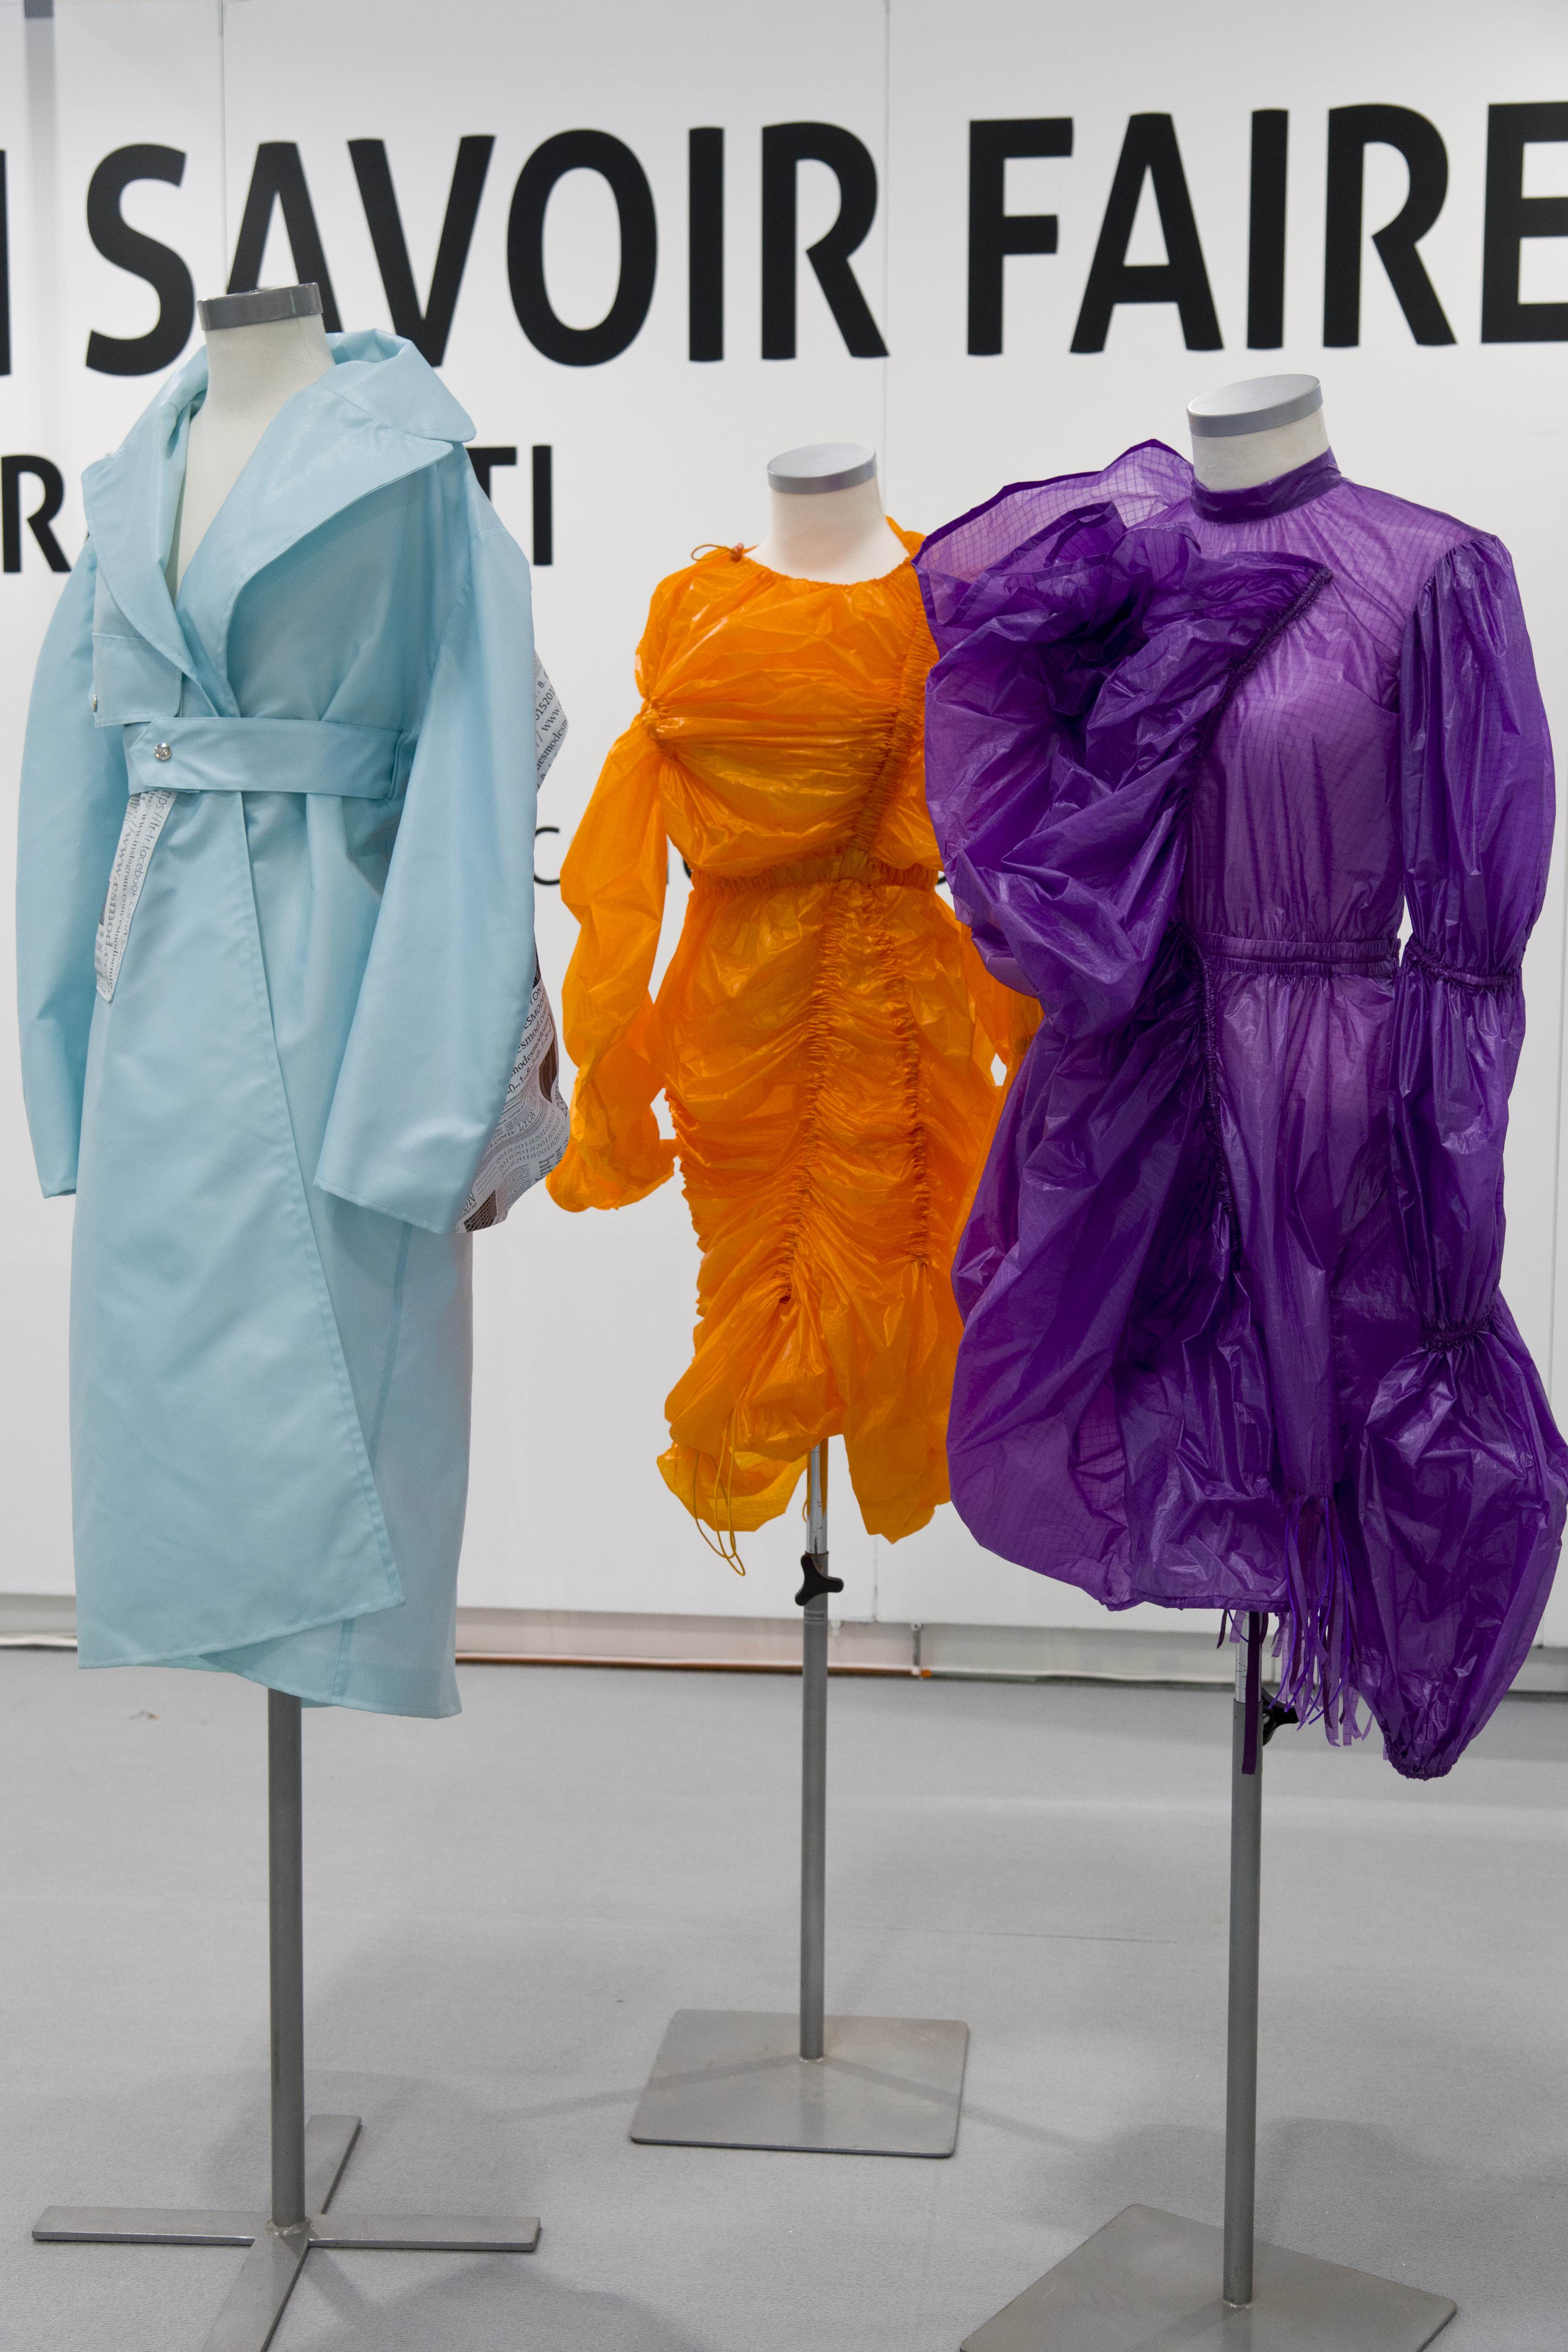 Three dresses made out of old parachutes created by student from Esmod Lyon in partnership with Porcher Industries.